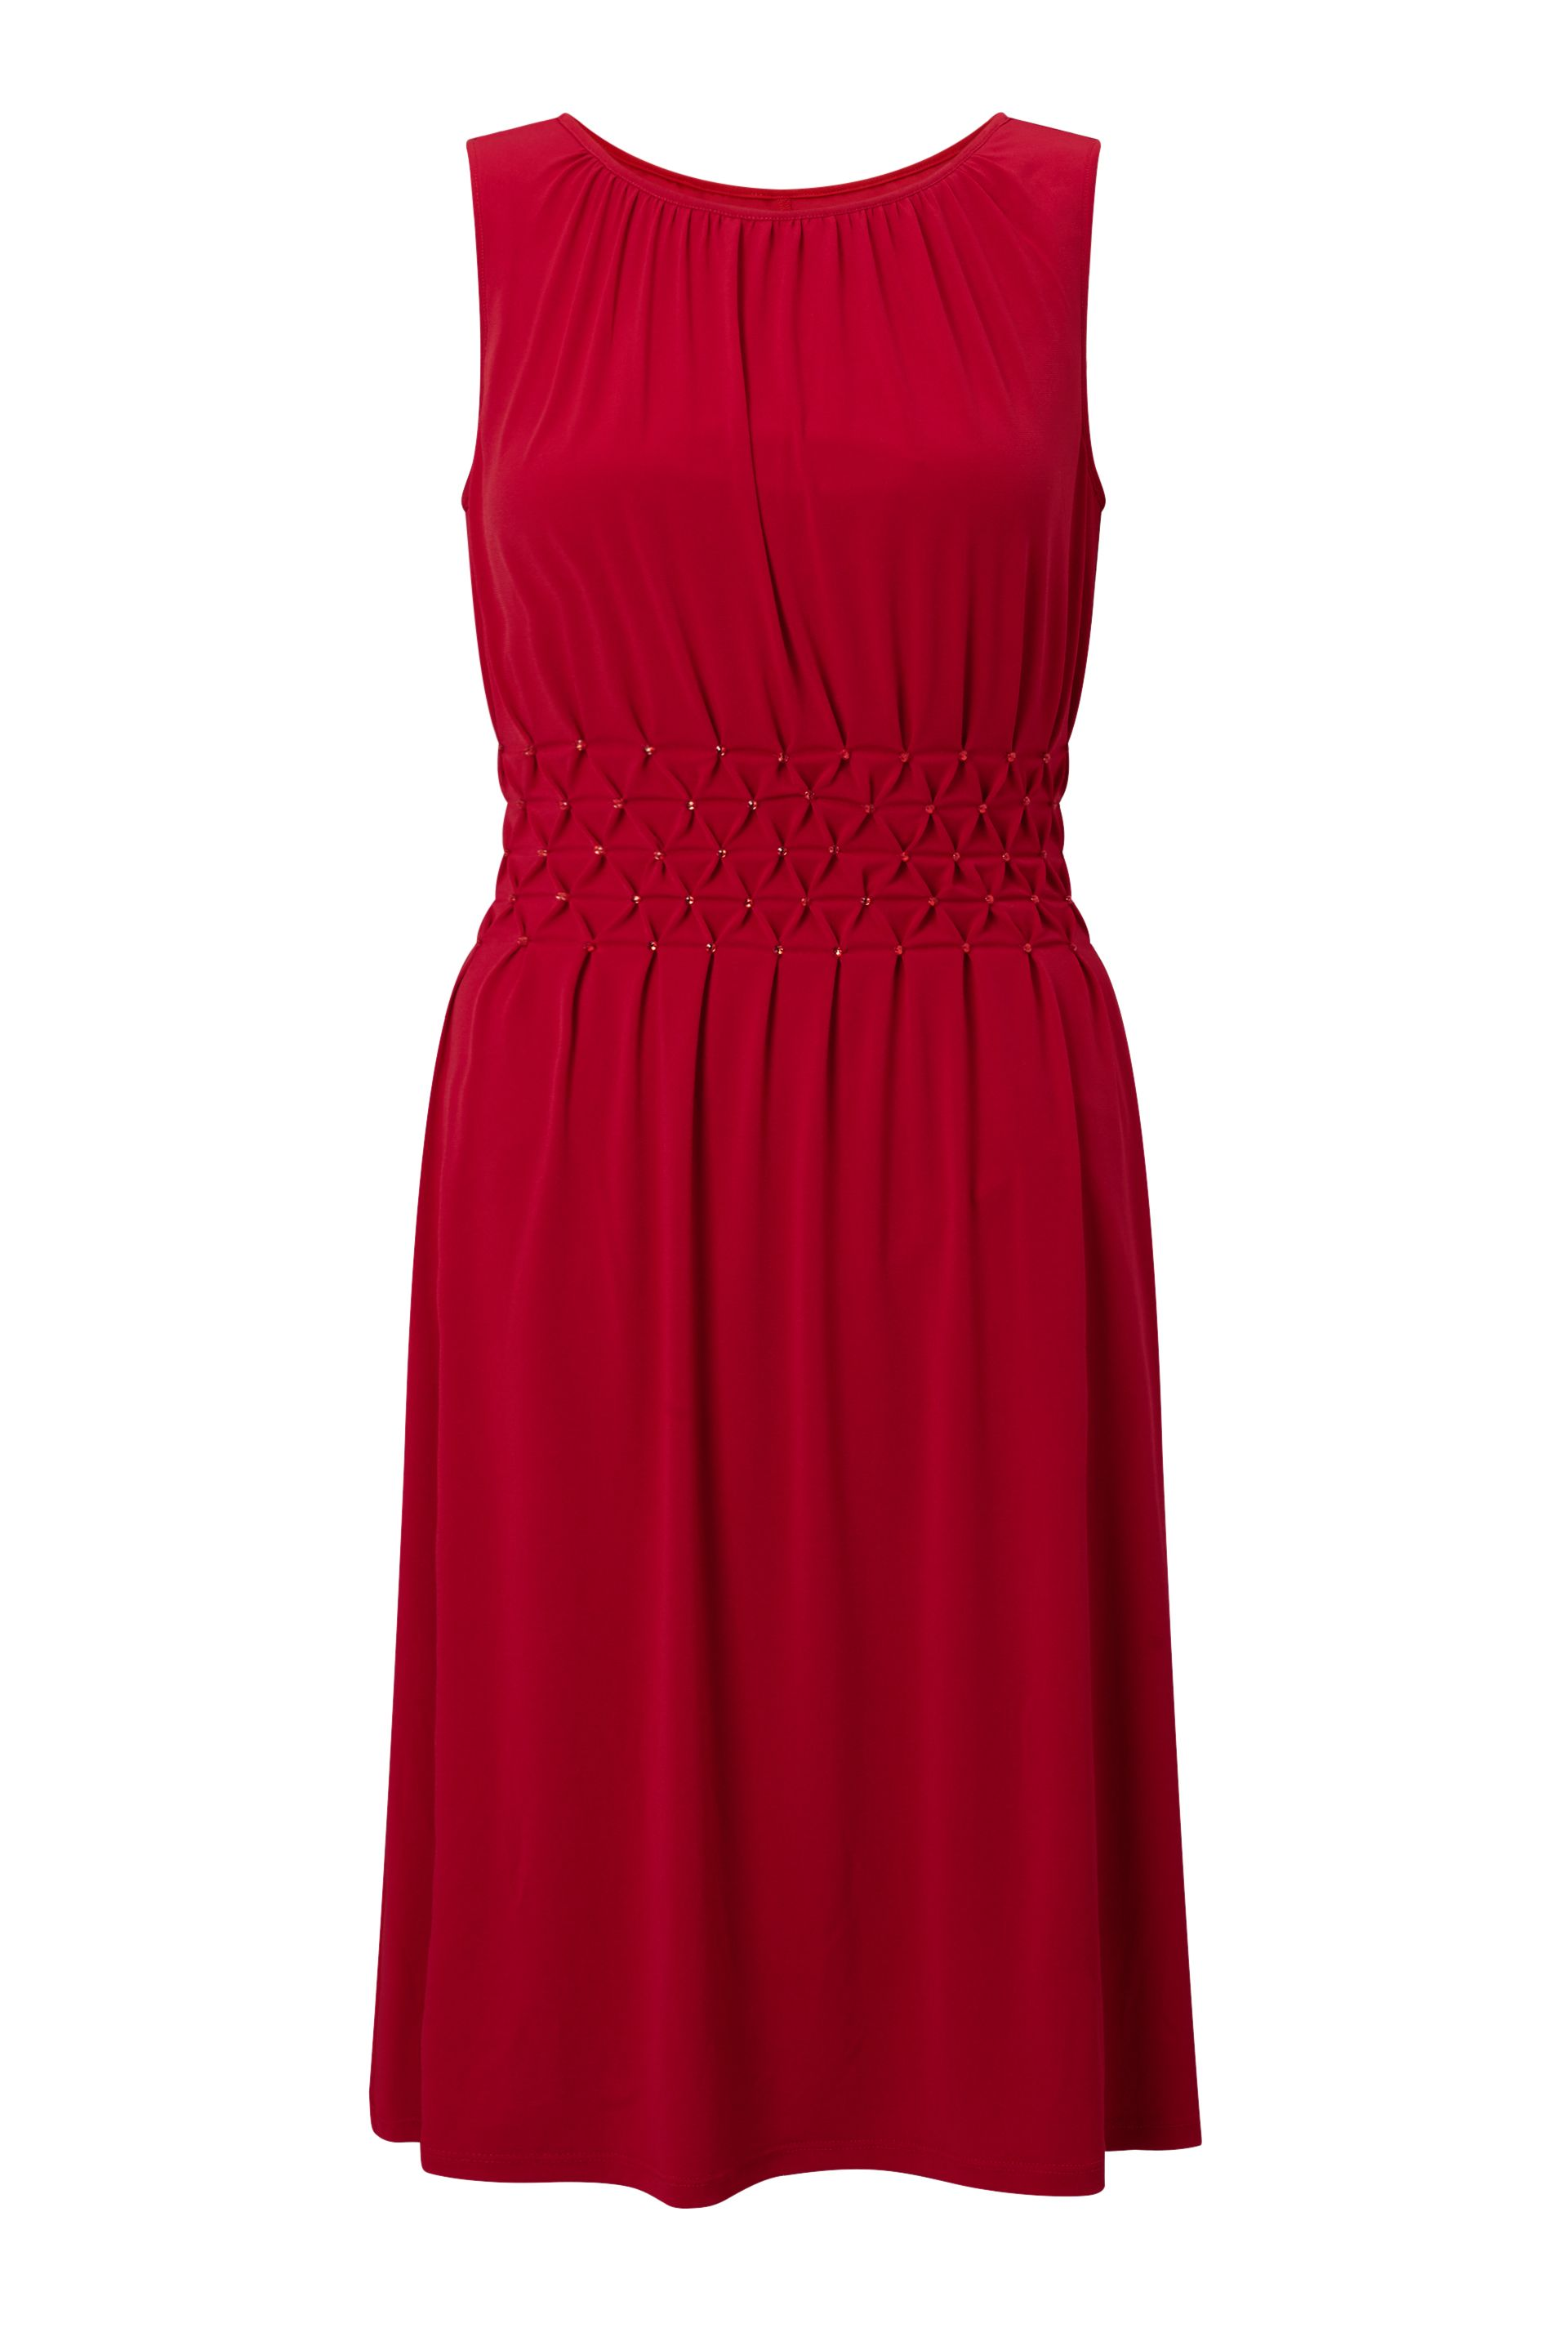 James Lakeland Sleeveless Diamantes Dress, Red